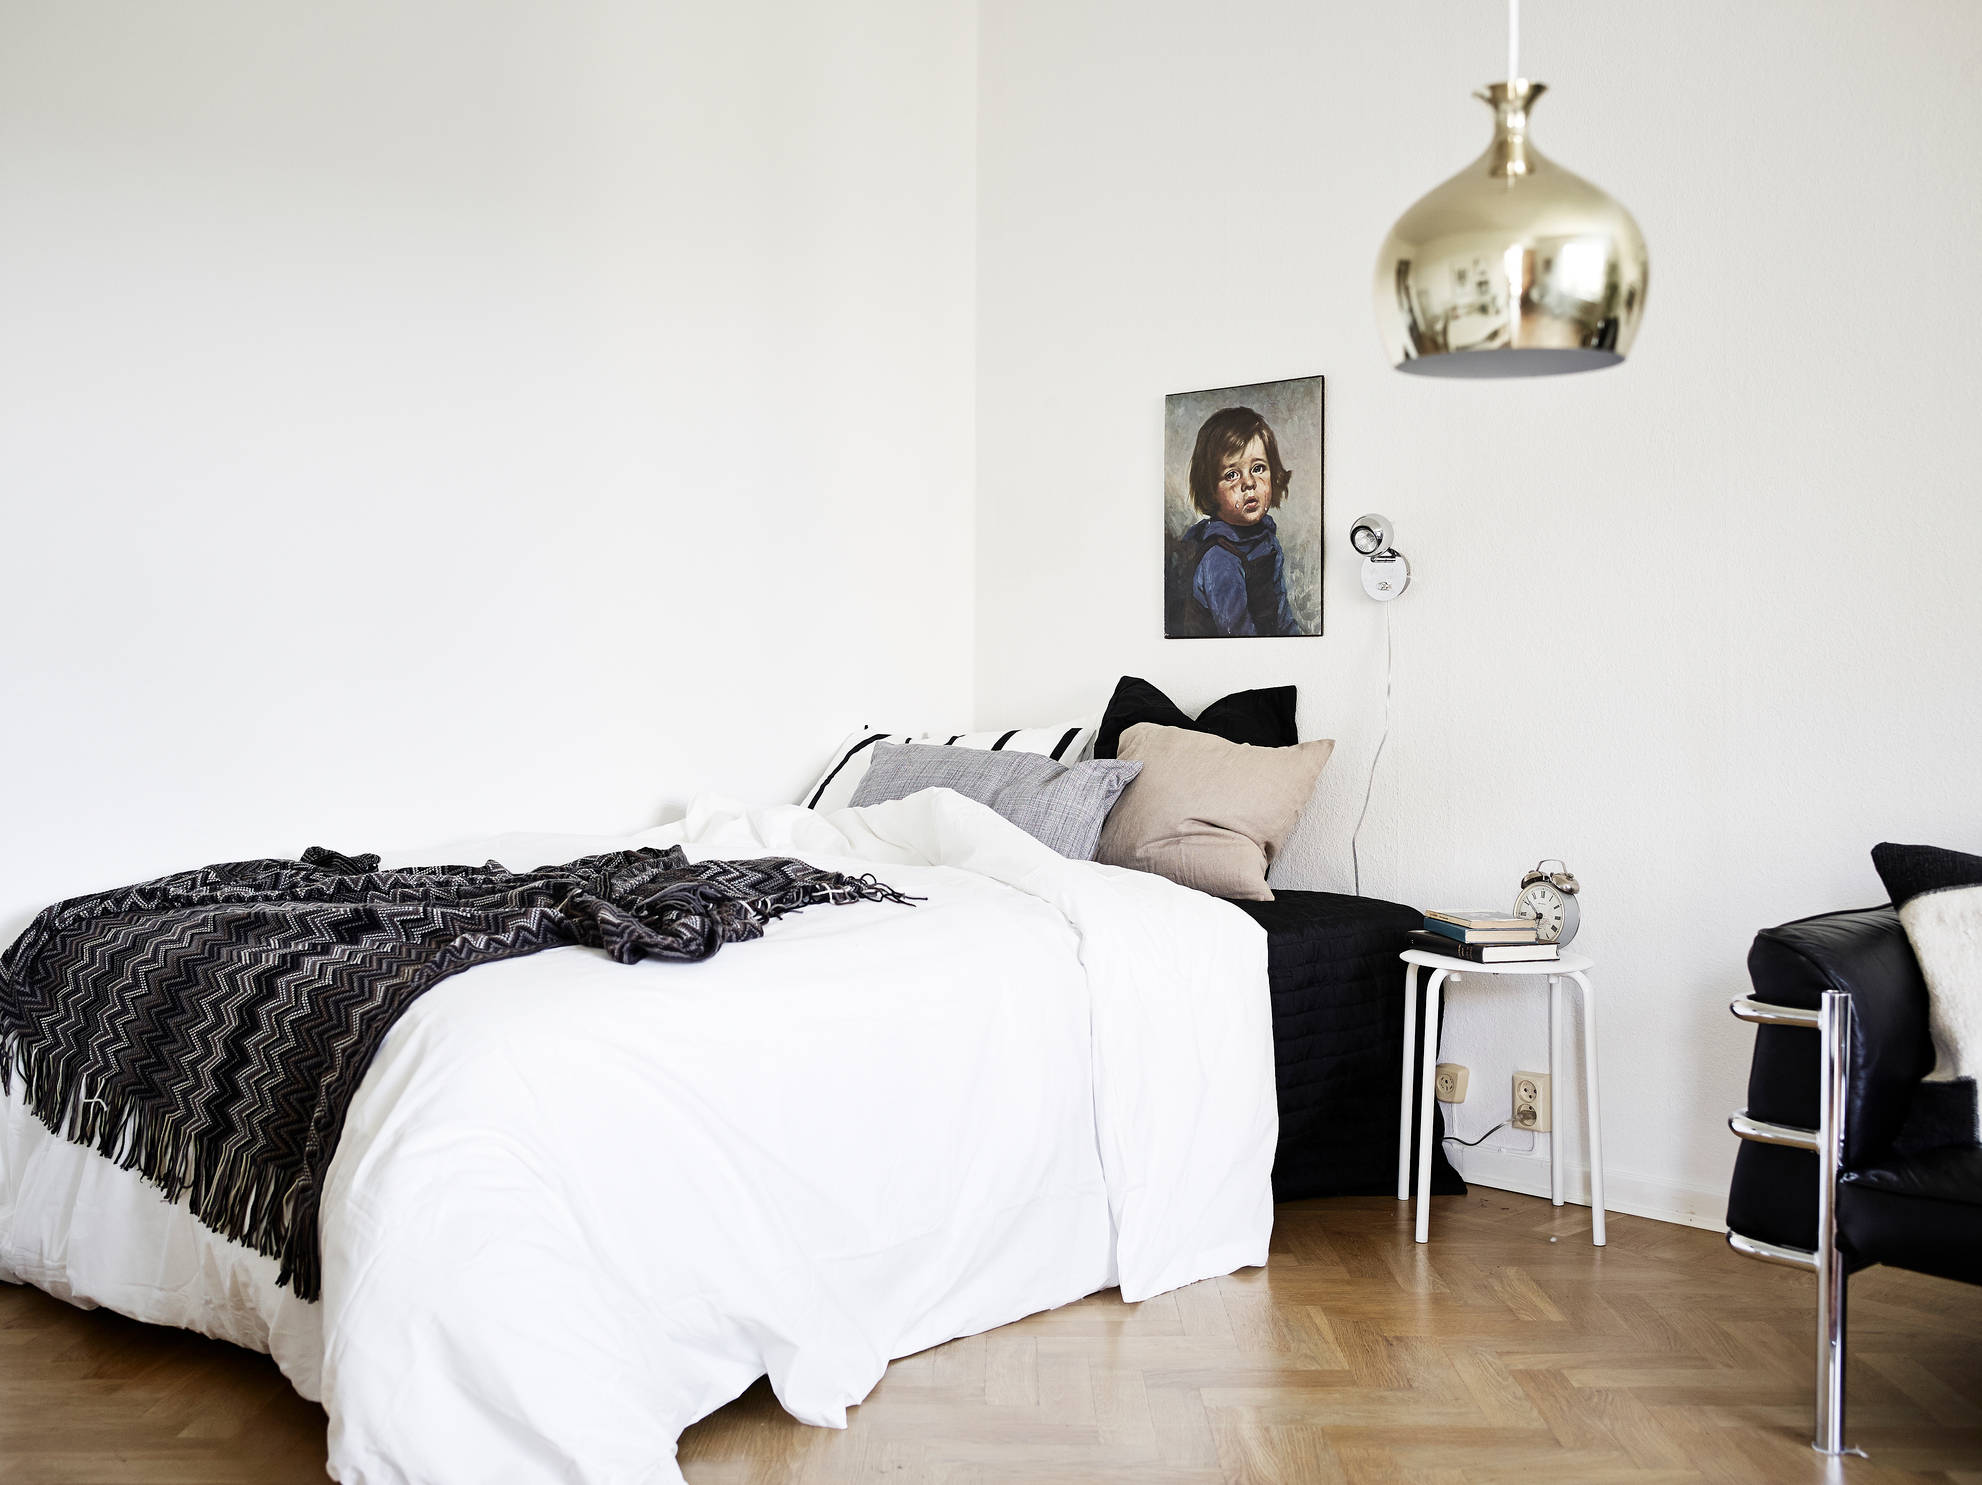 Mid-century modern flat with lots of plants - COCO LAPINE ...